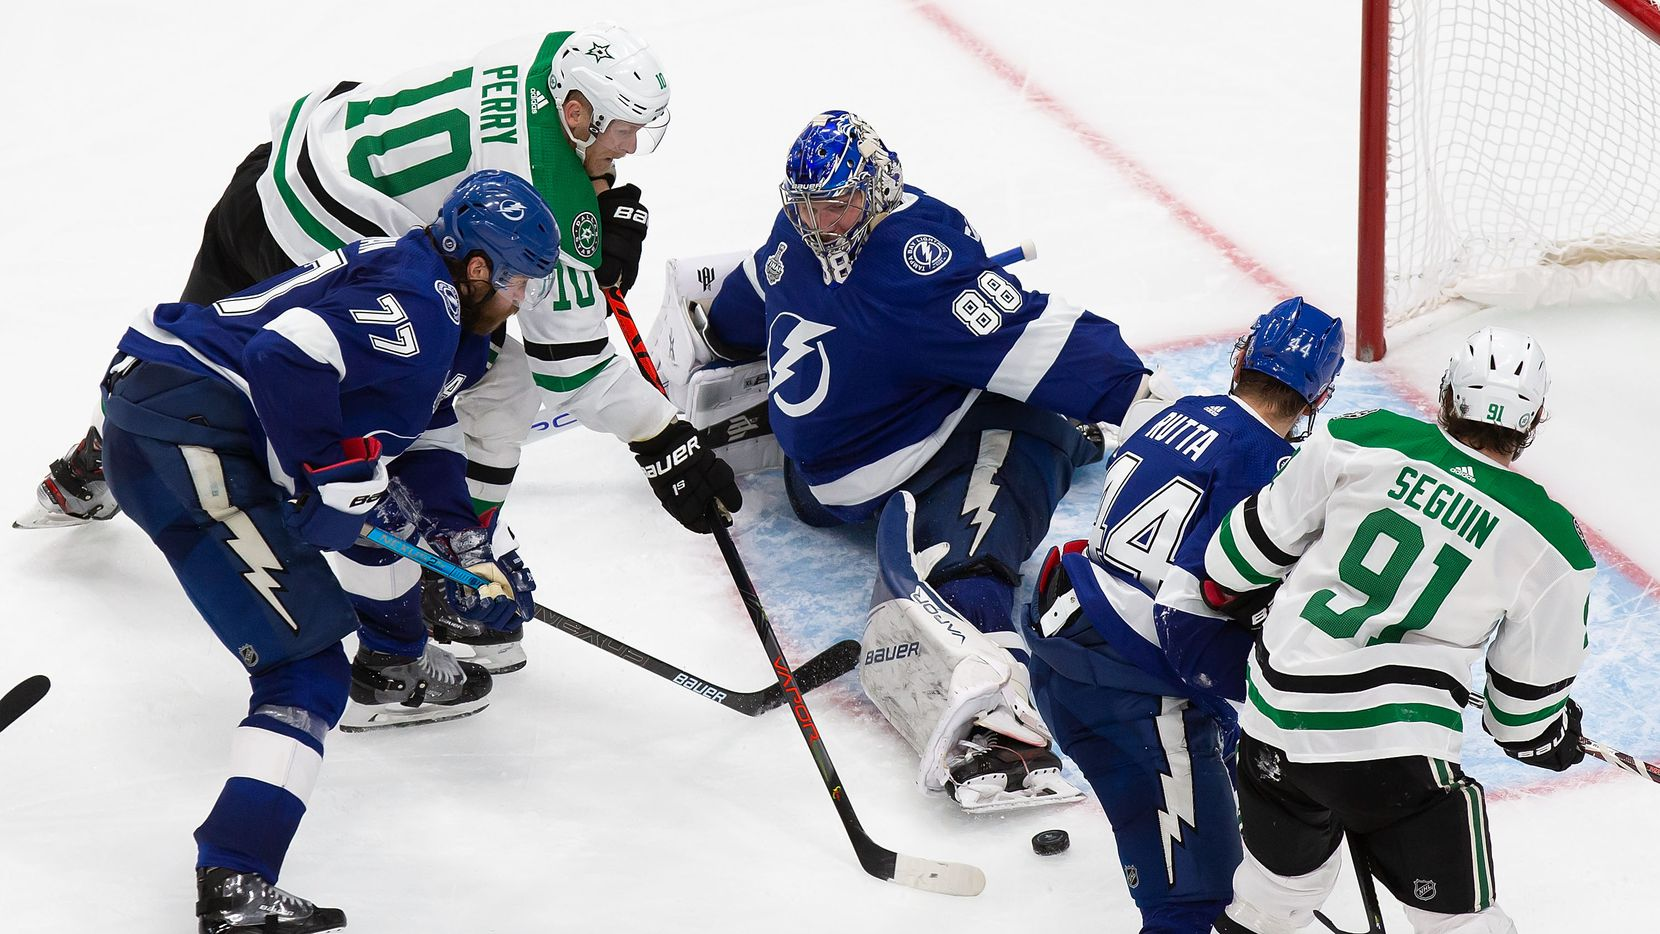 Corey Perry (10) of the Dallas Stars pokes the game winner past goaltender Andrei Vasilevskiy (88) of the Tampa Bay Lightning during Game Five of the Stanley Cup Final at Rogers Place in Edmonton, Alberta, Canada on Saturday, September 26, 2020.